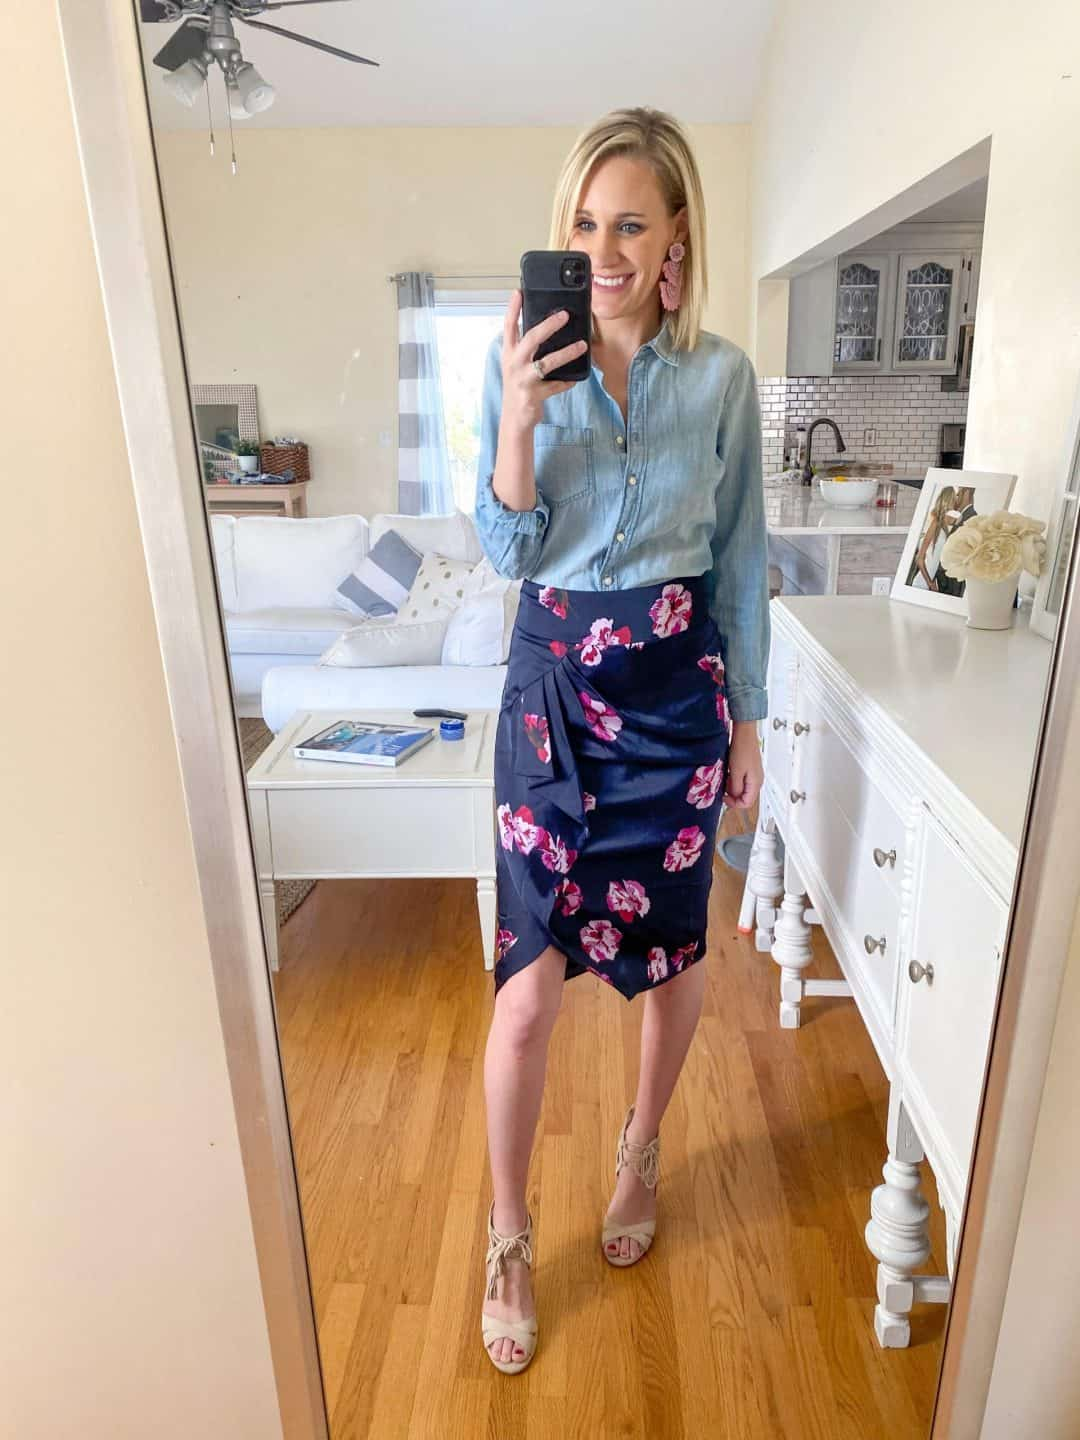 TJ Maxx Runway Spring Event favorites featured by top Detroit fashion blog, House of Navy: image of fashionable woman in designer floral skirt